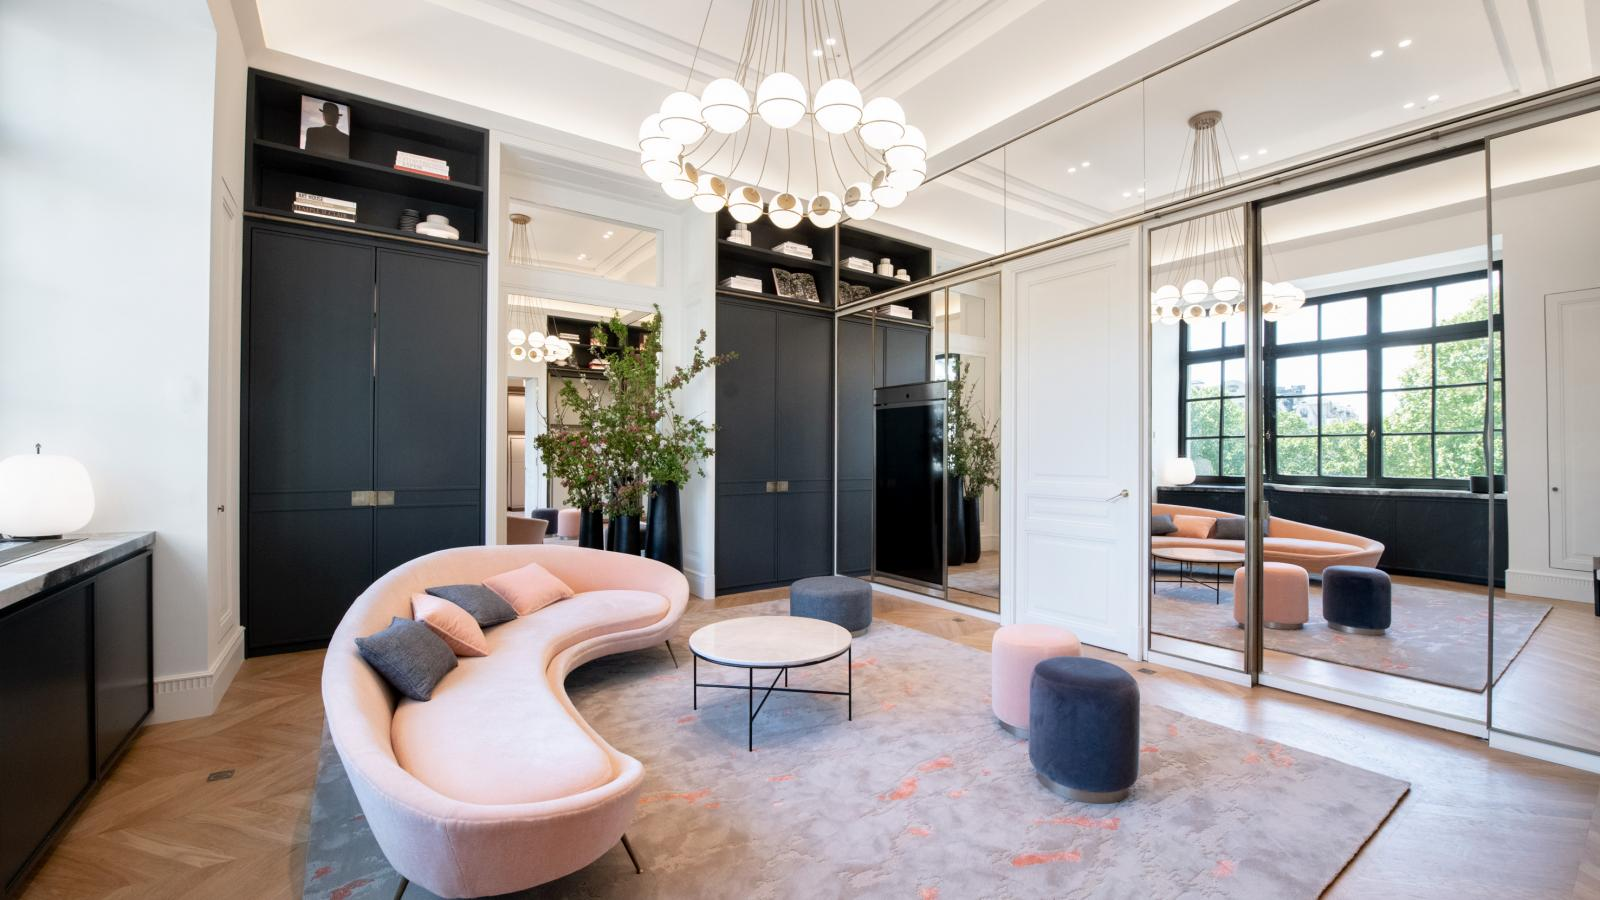 The luxury of the Bon Marché private salons